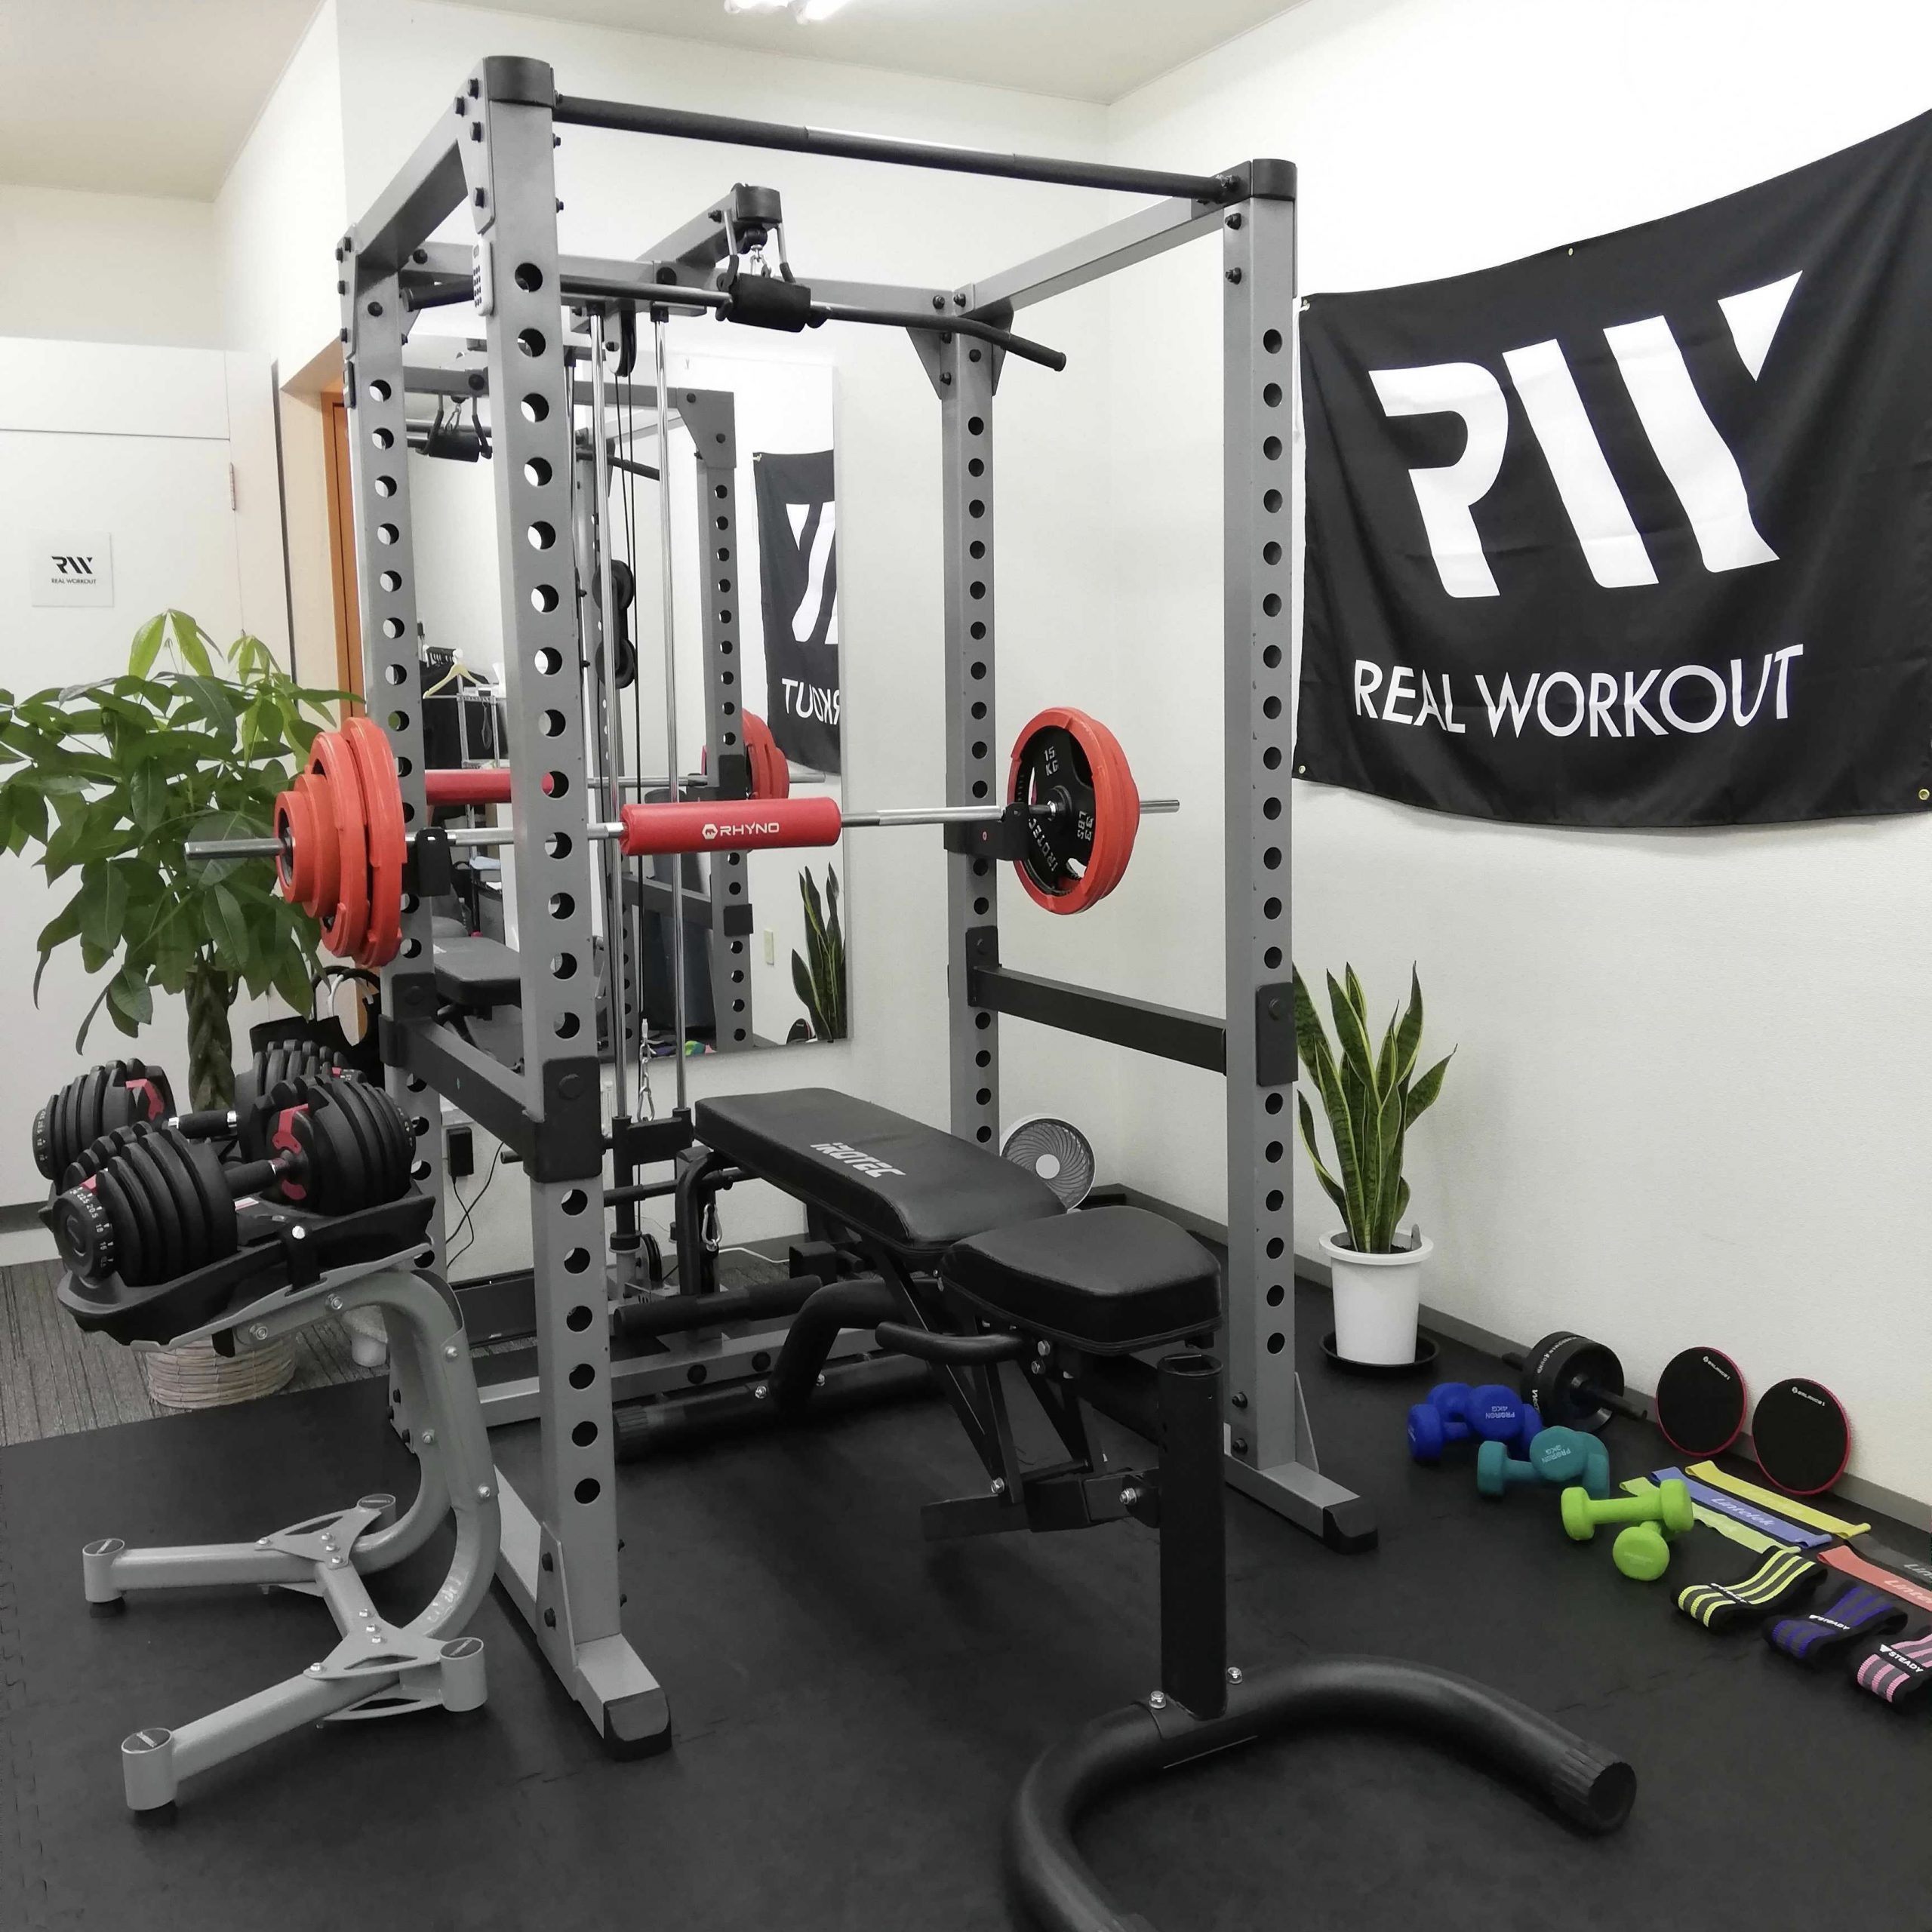 REAL WORKOUT羽田店の画像